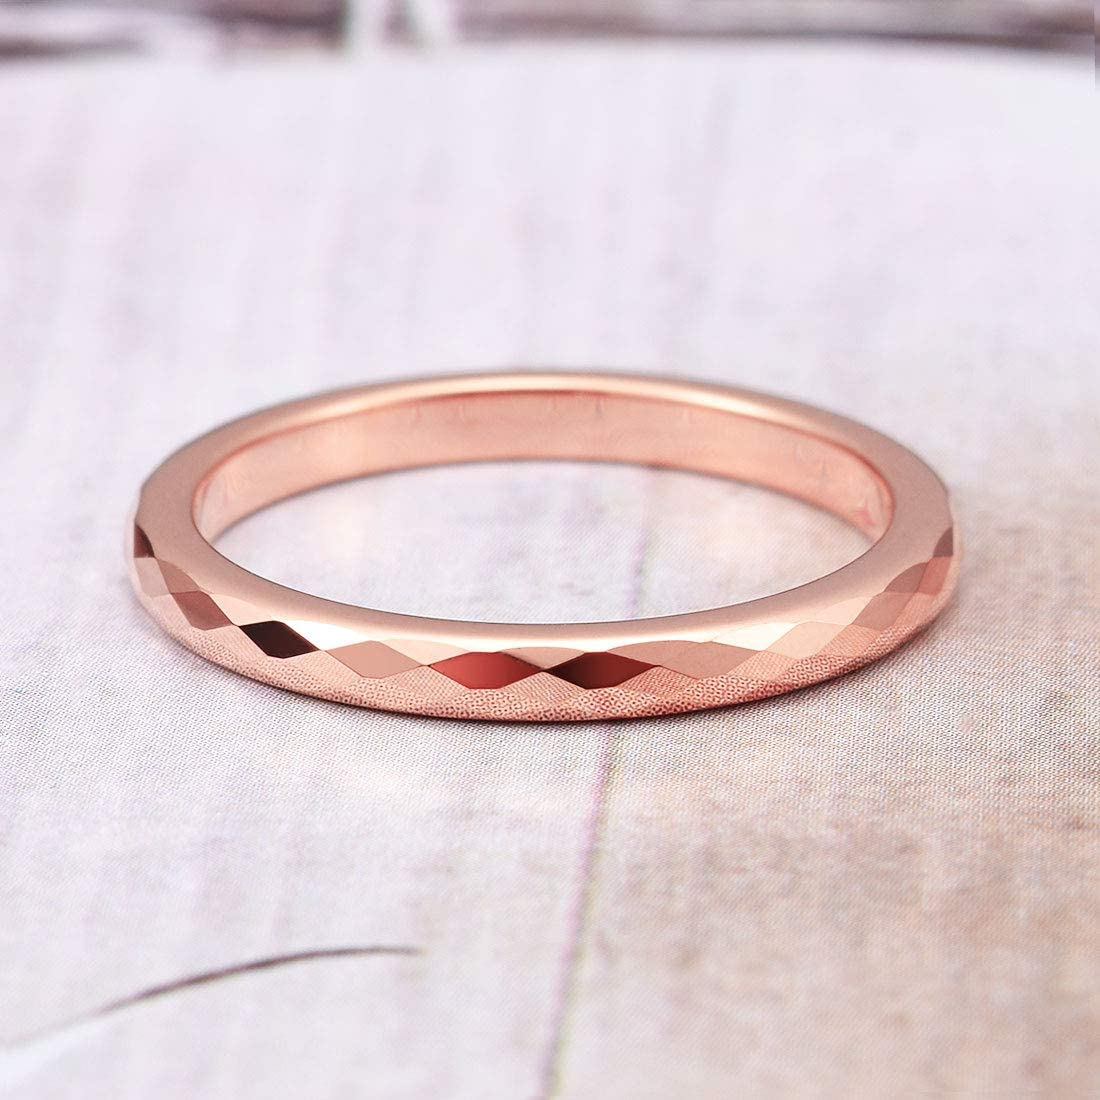 THREE KEYS JEWELRY Women Wedding Bands 2 4mm Rose Gold Tungsten Carbide Ring Polished Multi-faceted Infinity Unique for Her